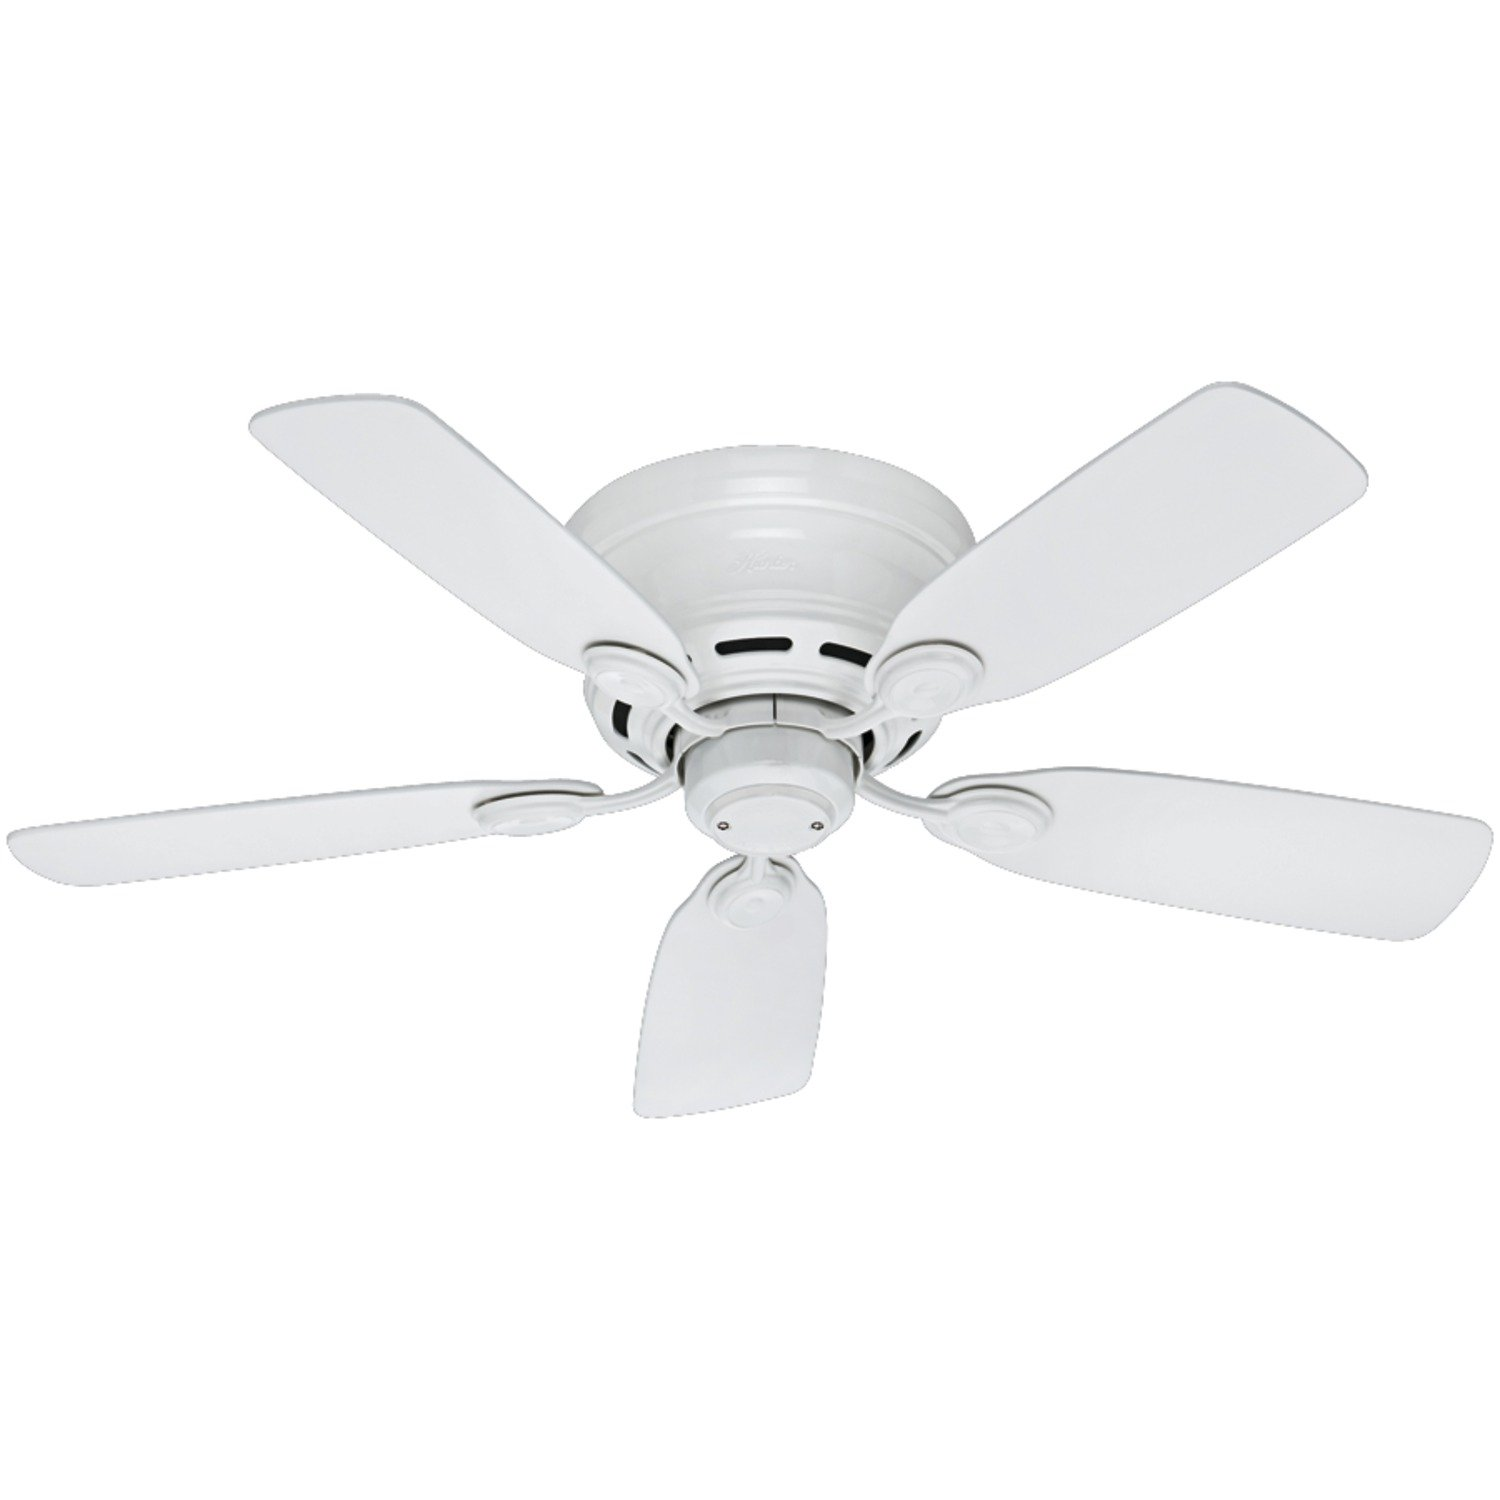 low with at fans light ceiling entranching profile lights hunter fan